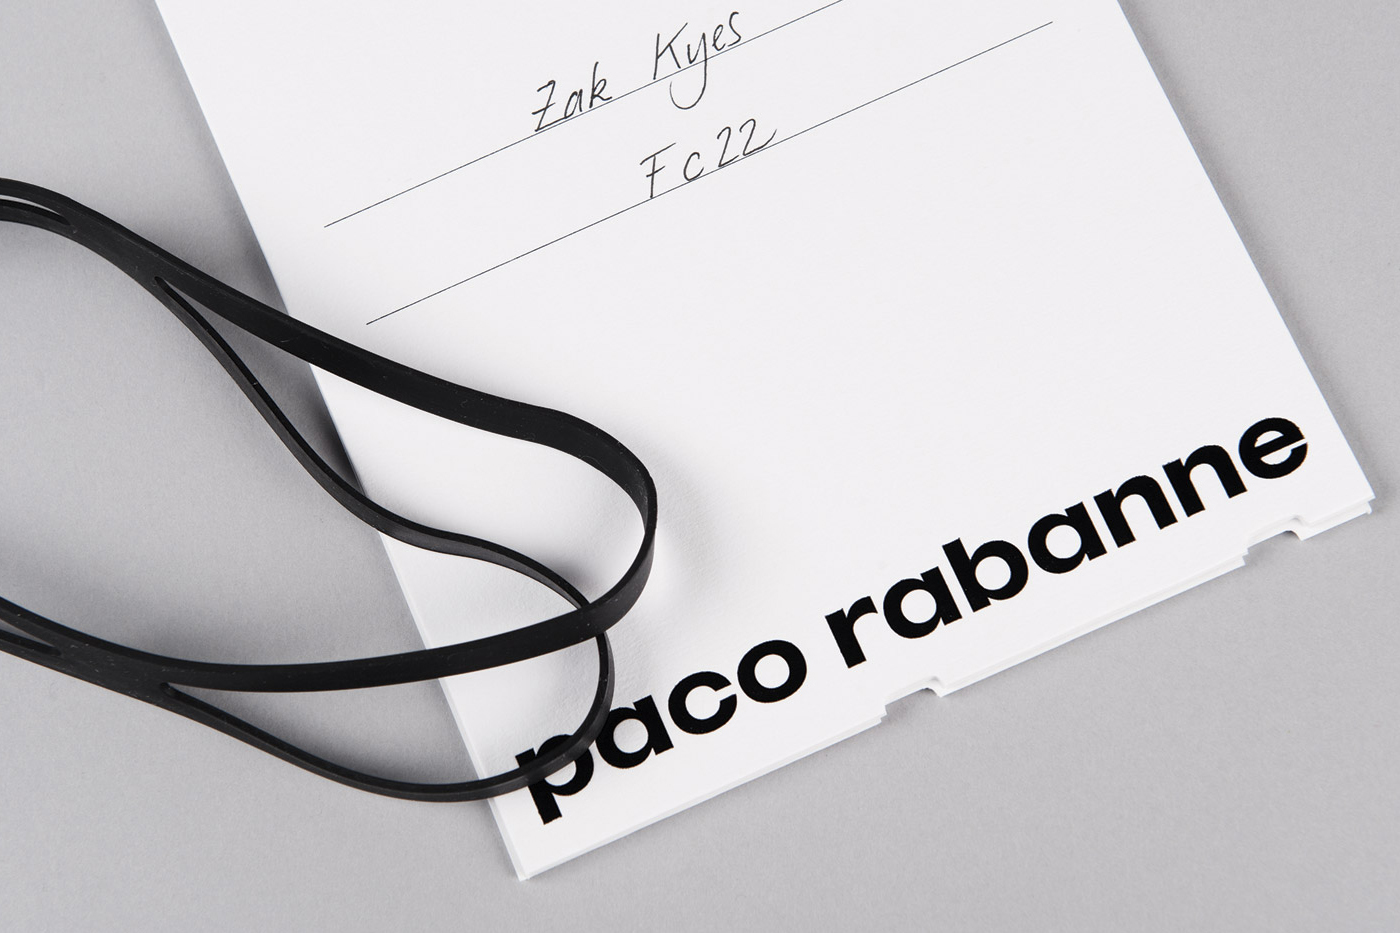 Branding for French fashion label Paco Rabanne by Zak Group, United Kingdom